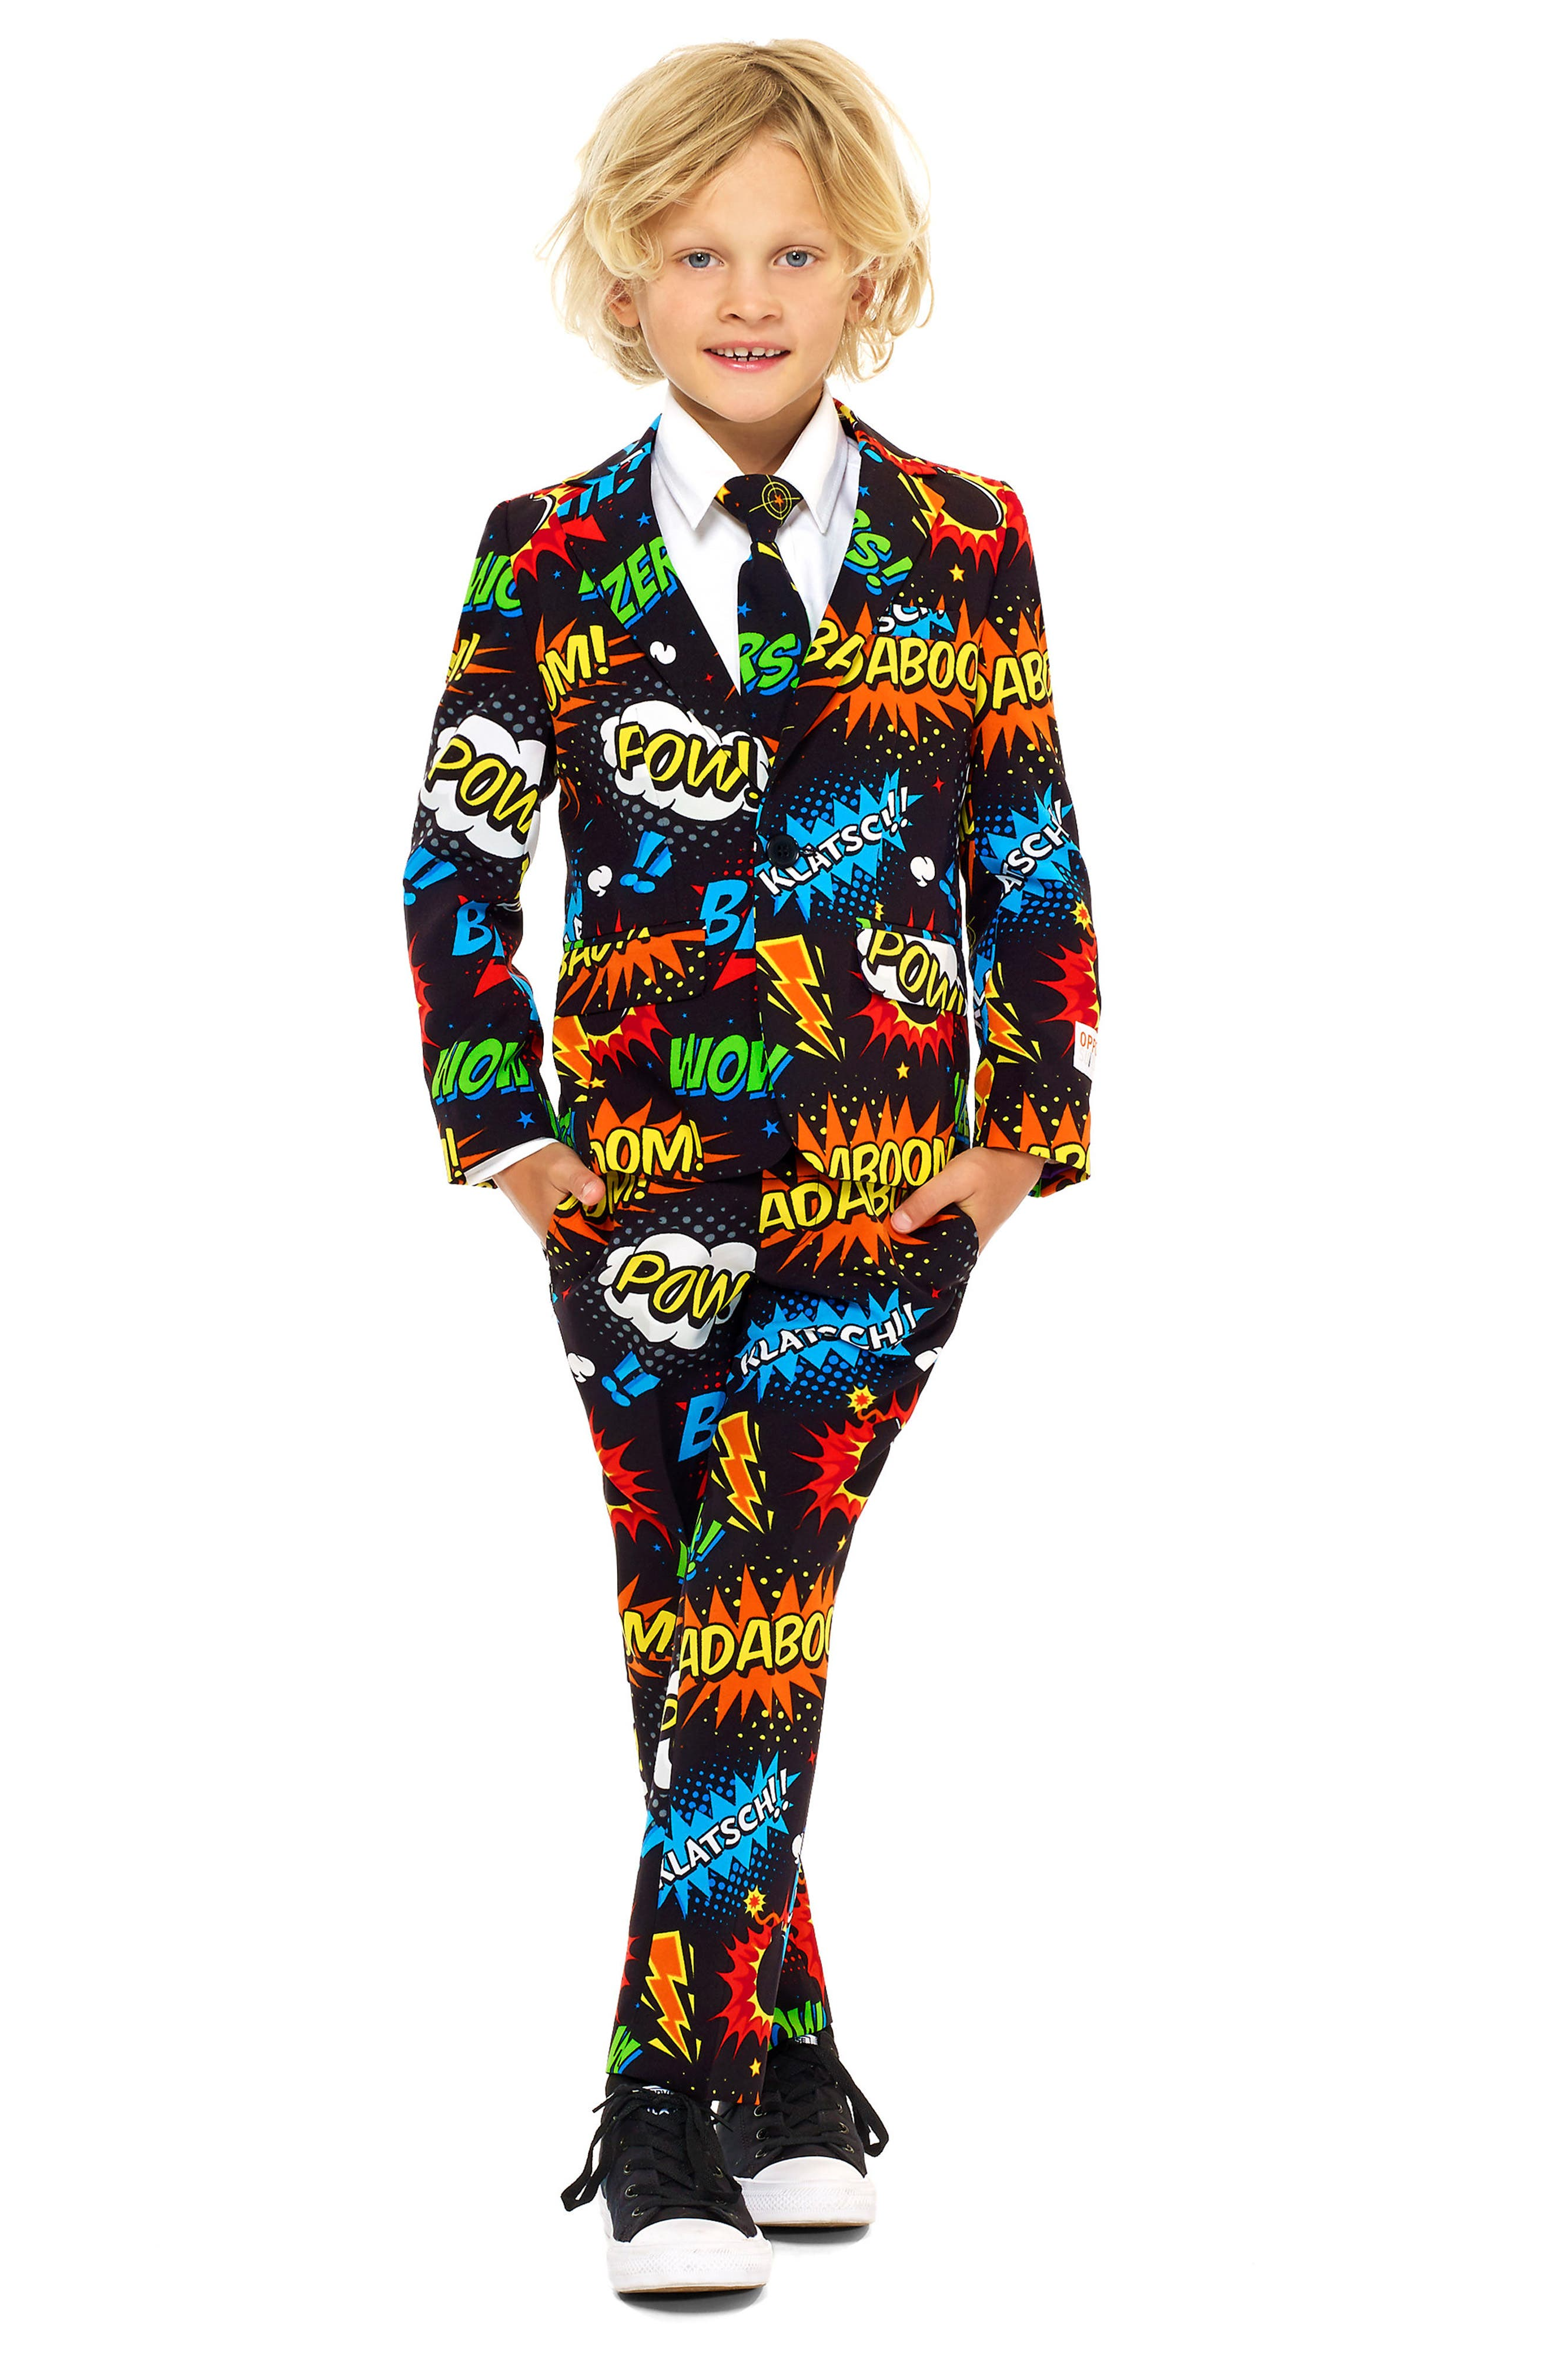 Badaboom Two-Piece Suit with Tie,                             Main thumbnail 1, color,                             MISCELLANEOUS